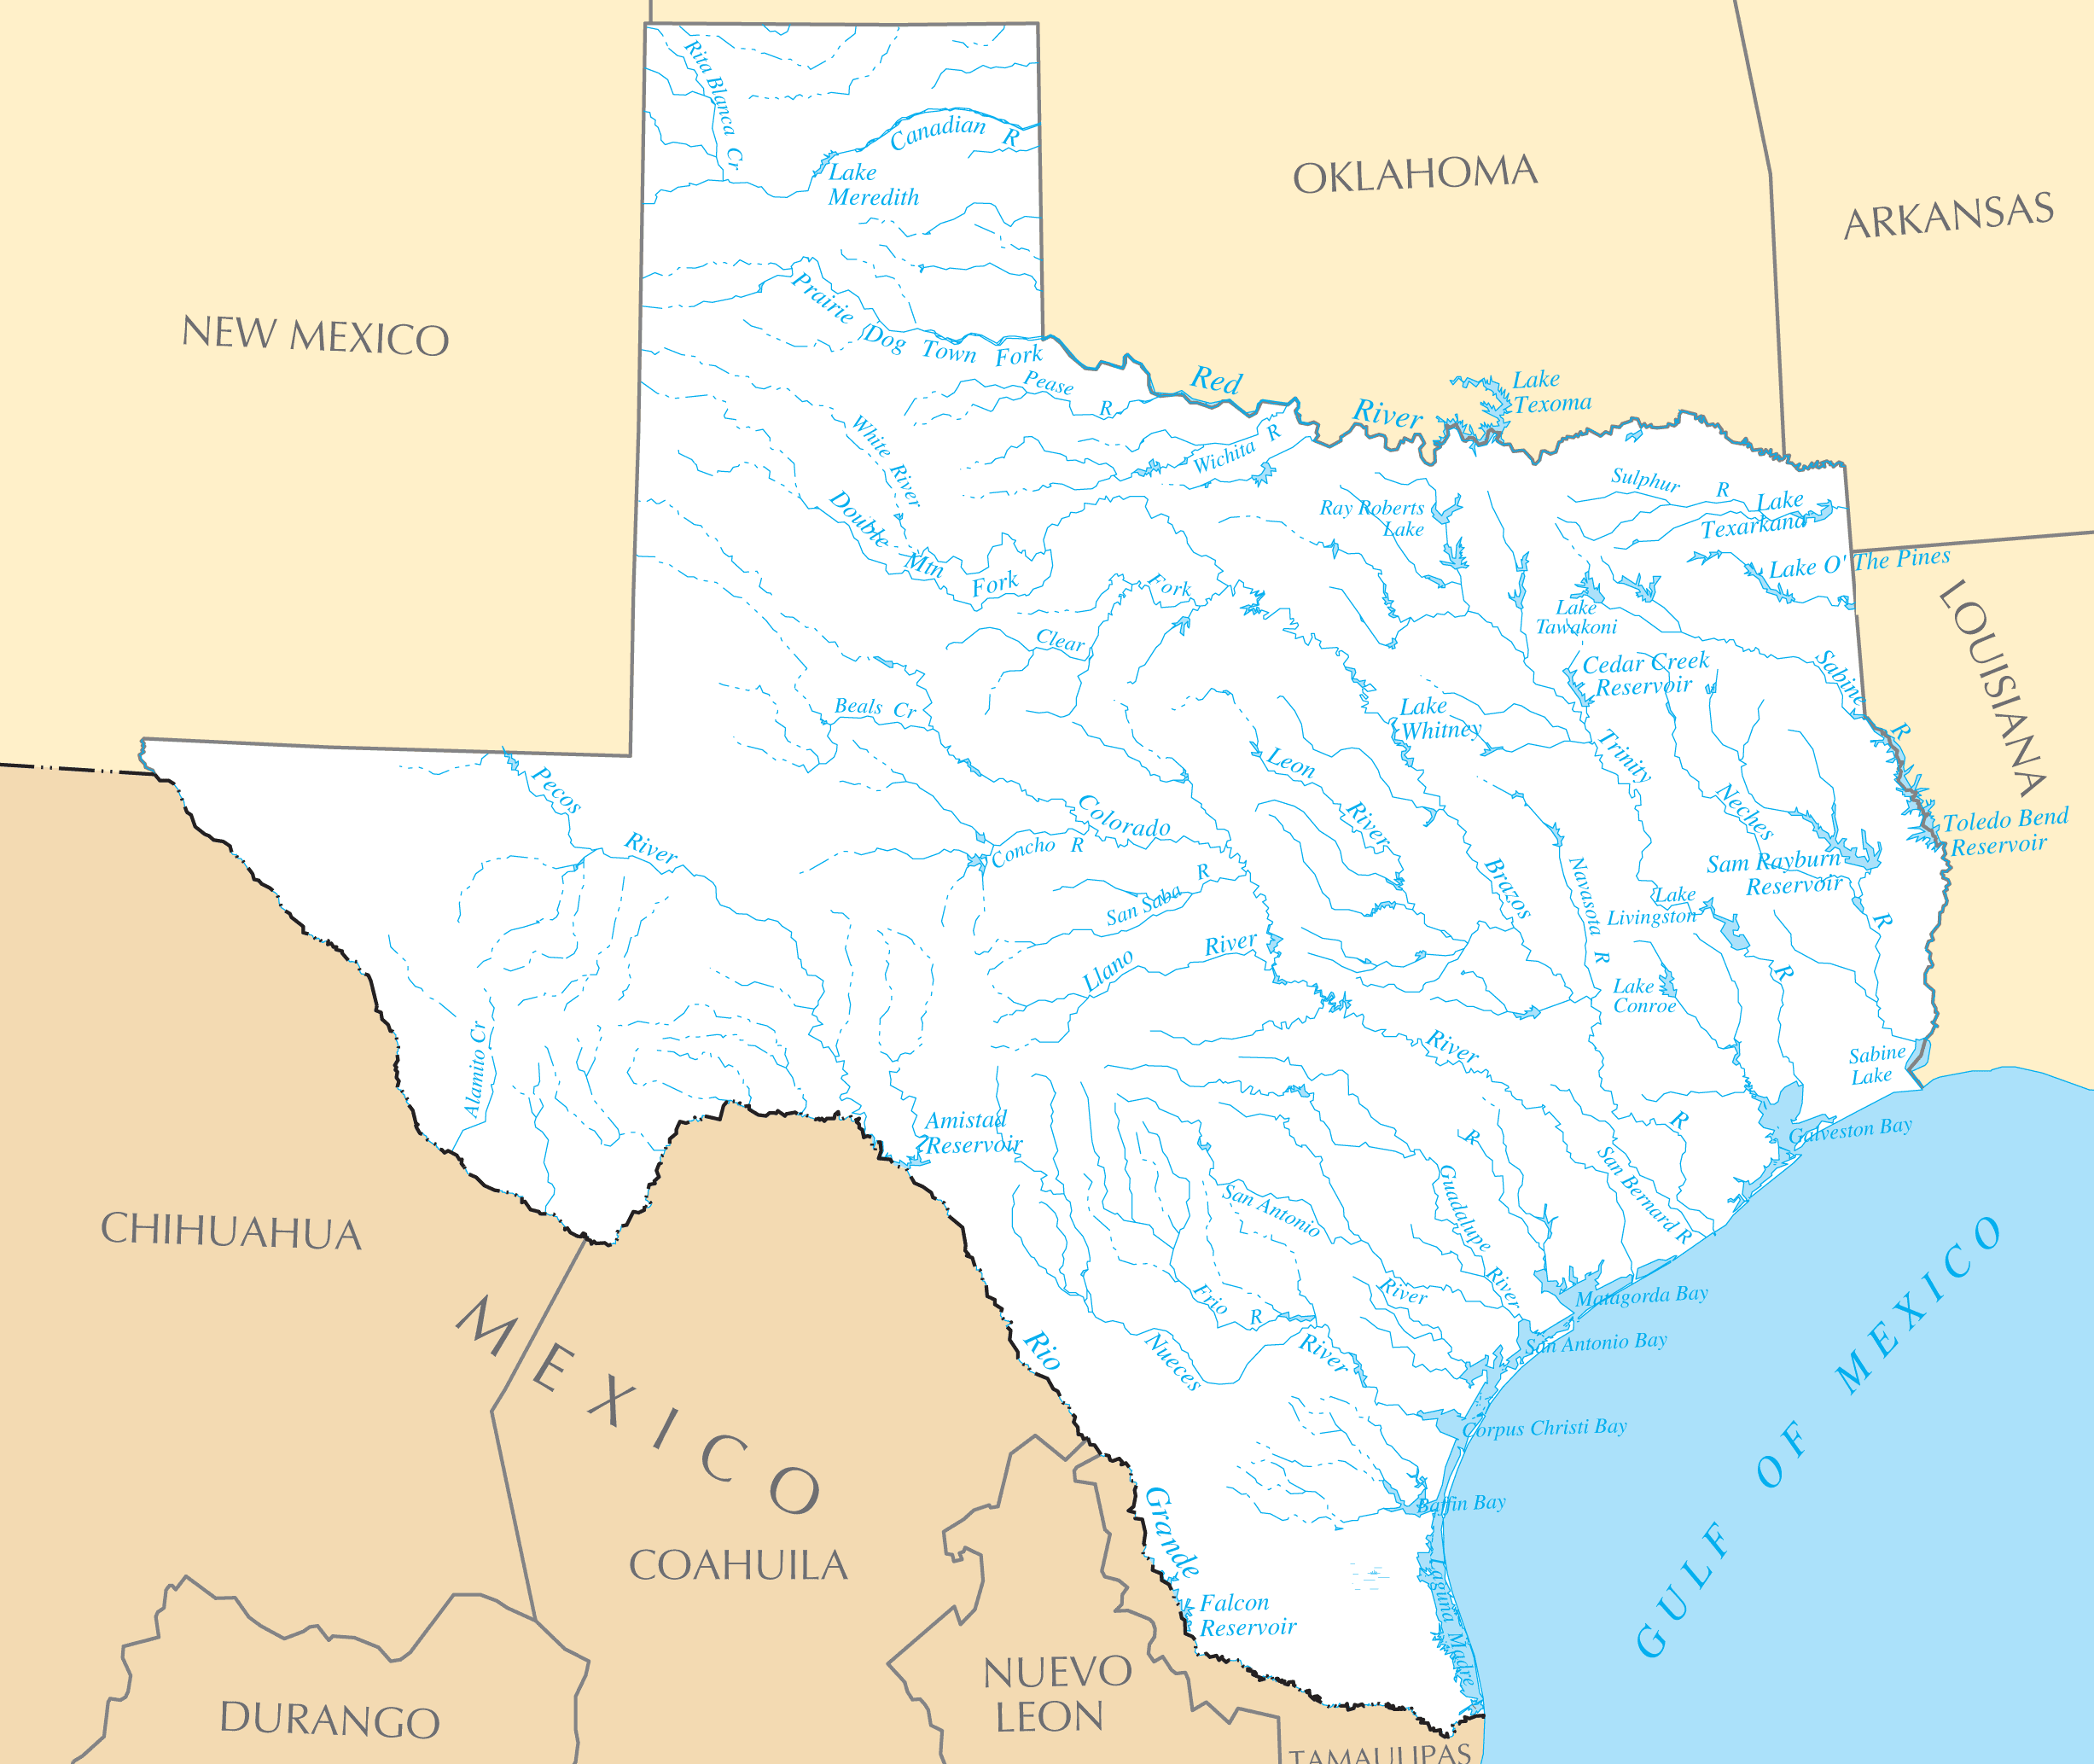 Texas Rivers And Lakes Mapsofnet - Physical map of texas rivers